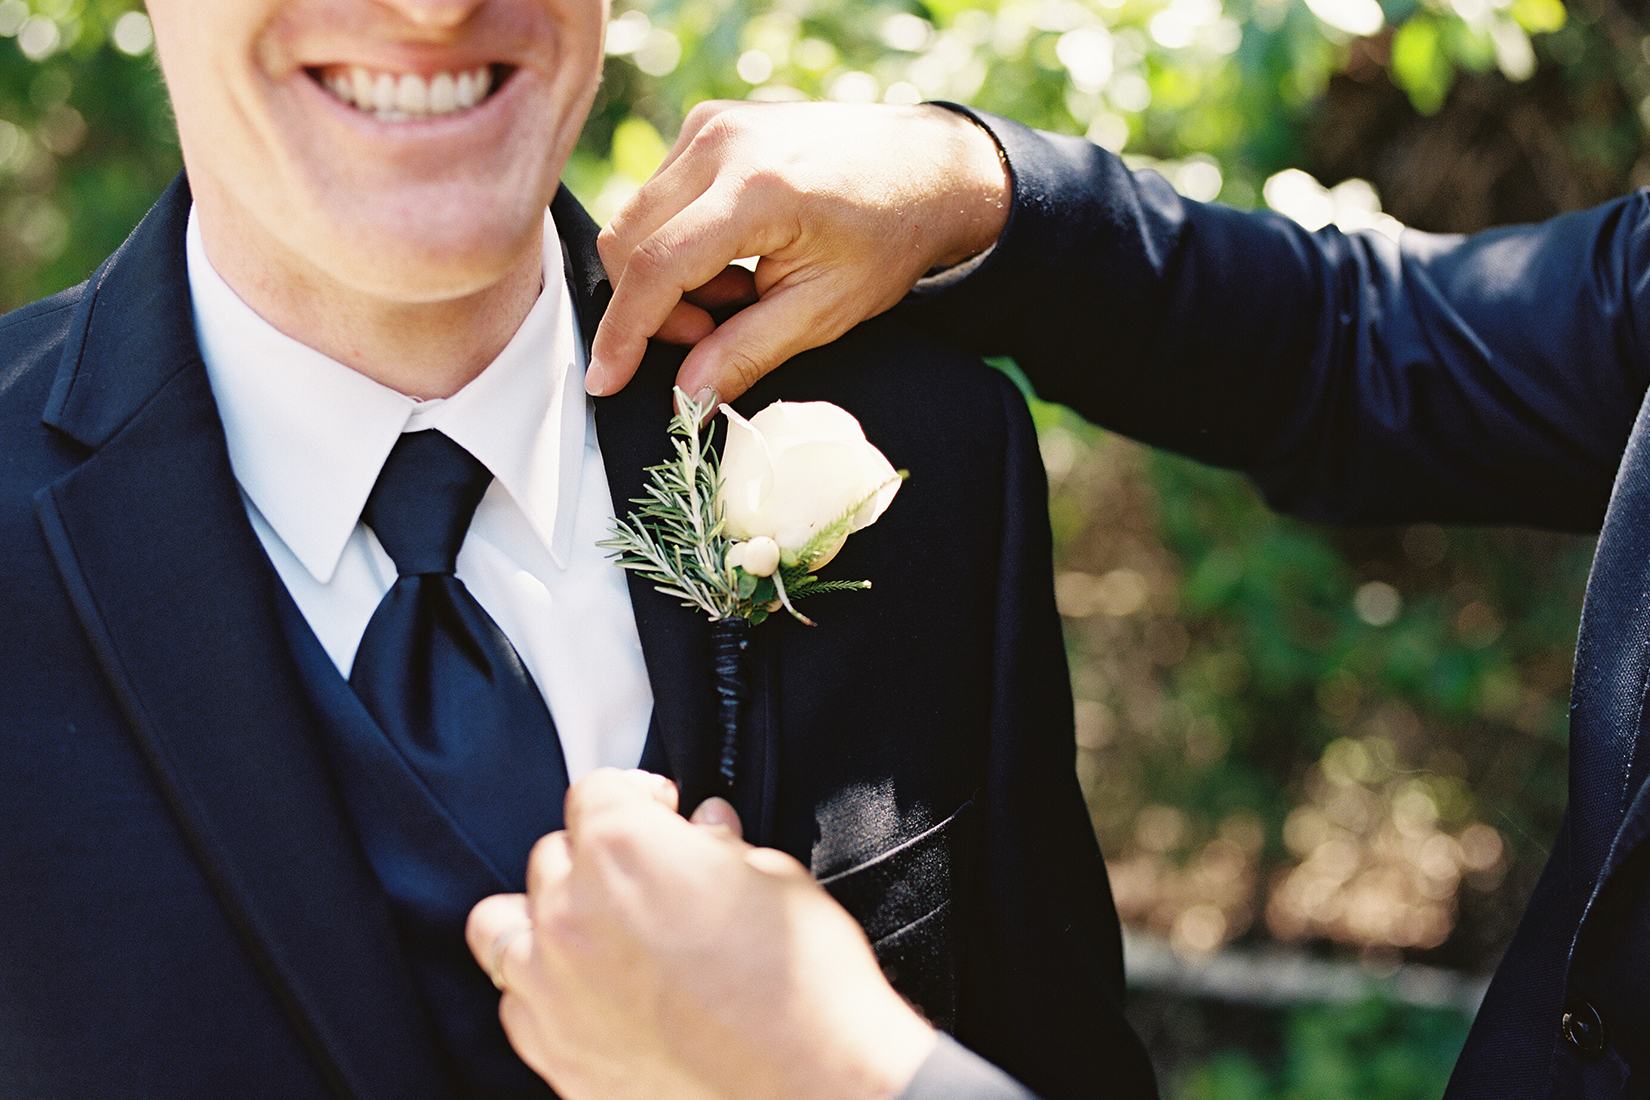 An image of a groom smiling as one of his friends attaches a white rose boutonniere to his suit